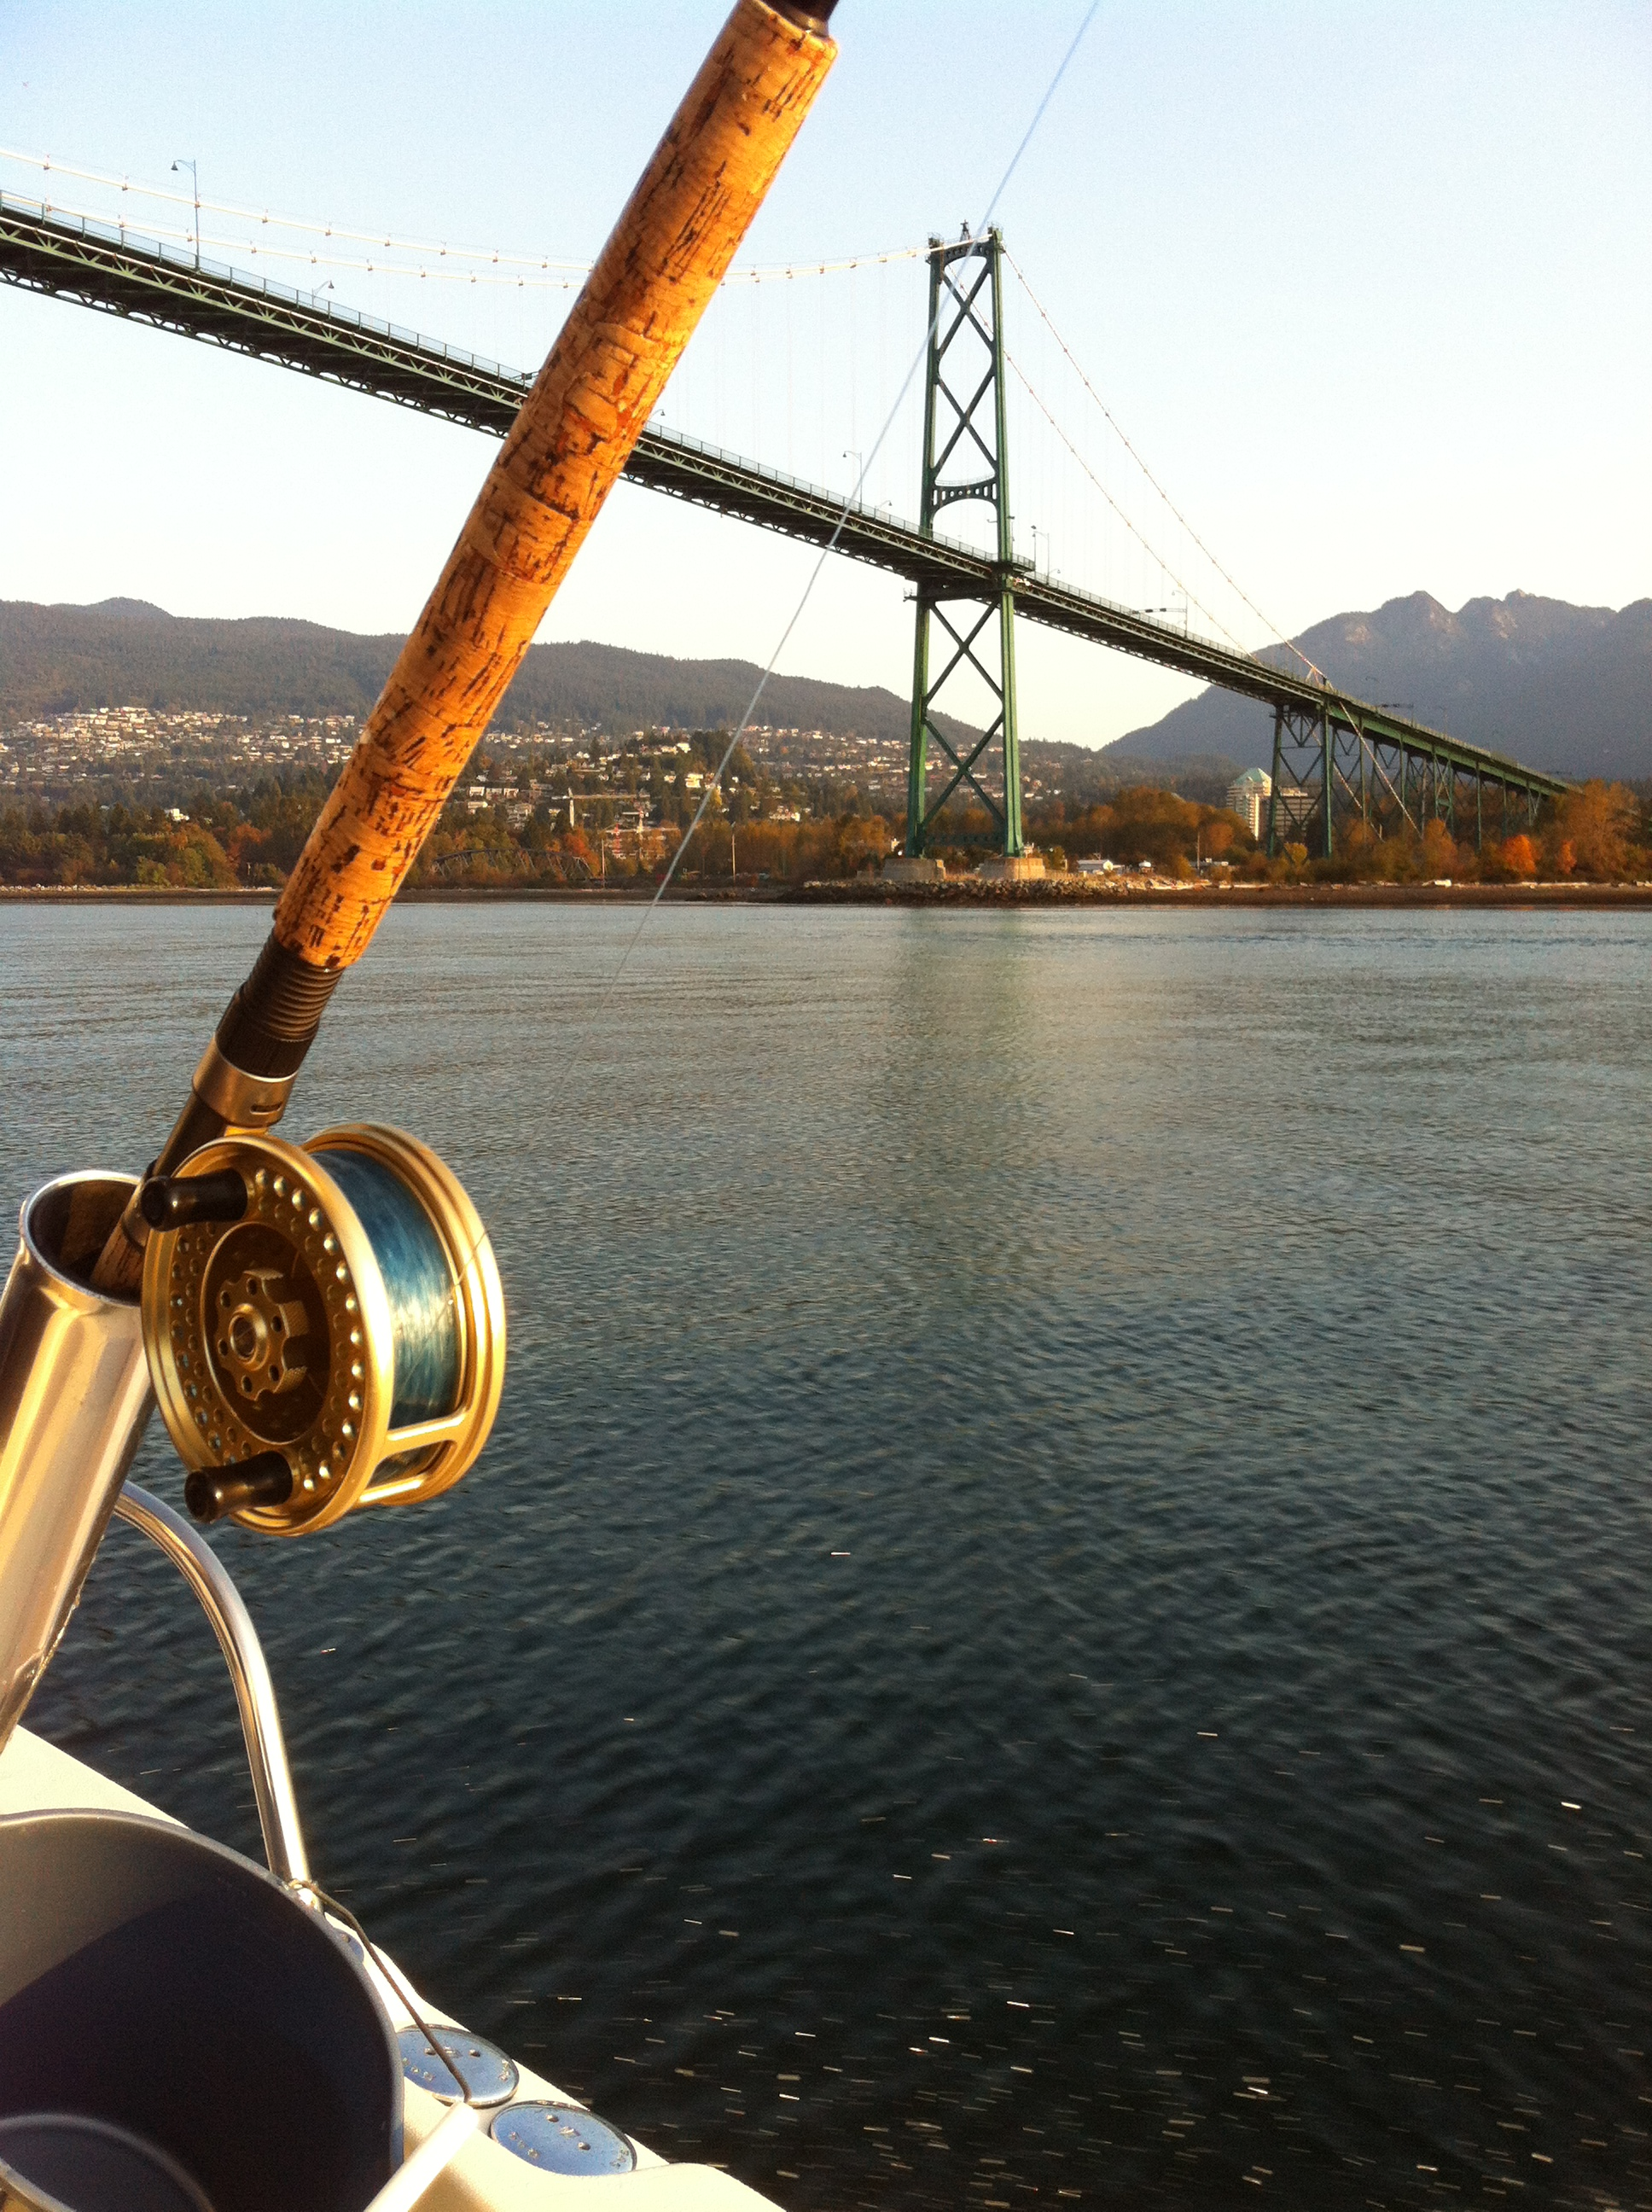 Lions Gate Bridge - Burrard Inlet Fishing